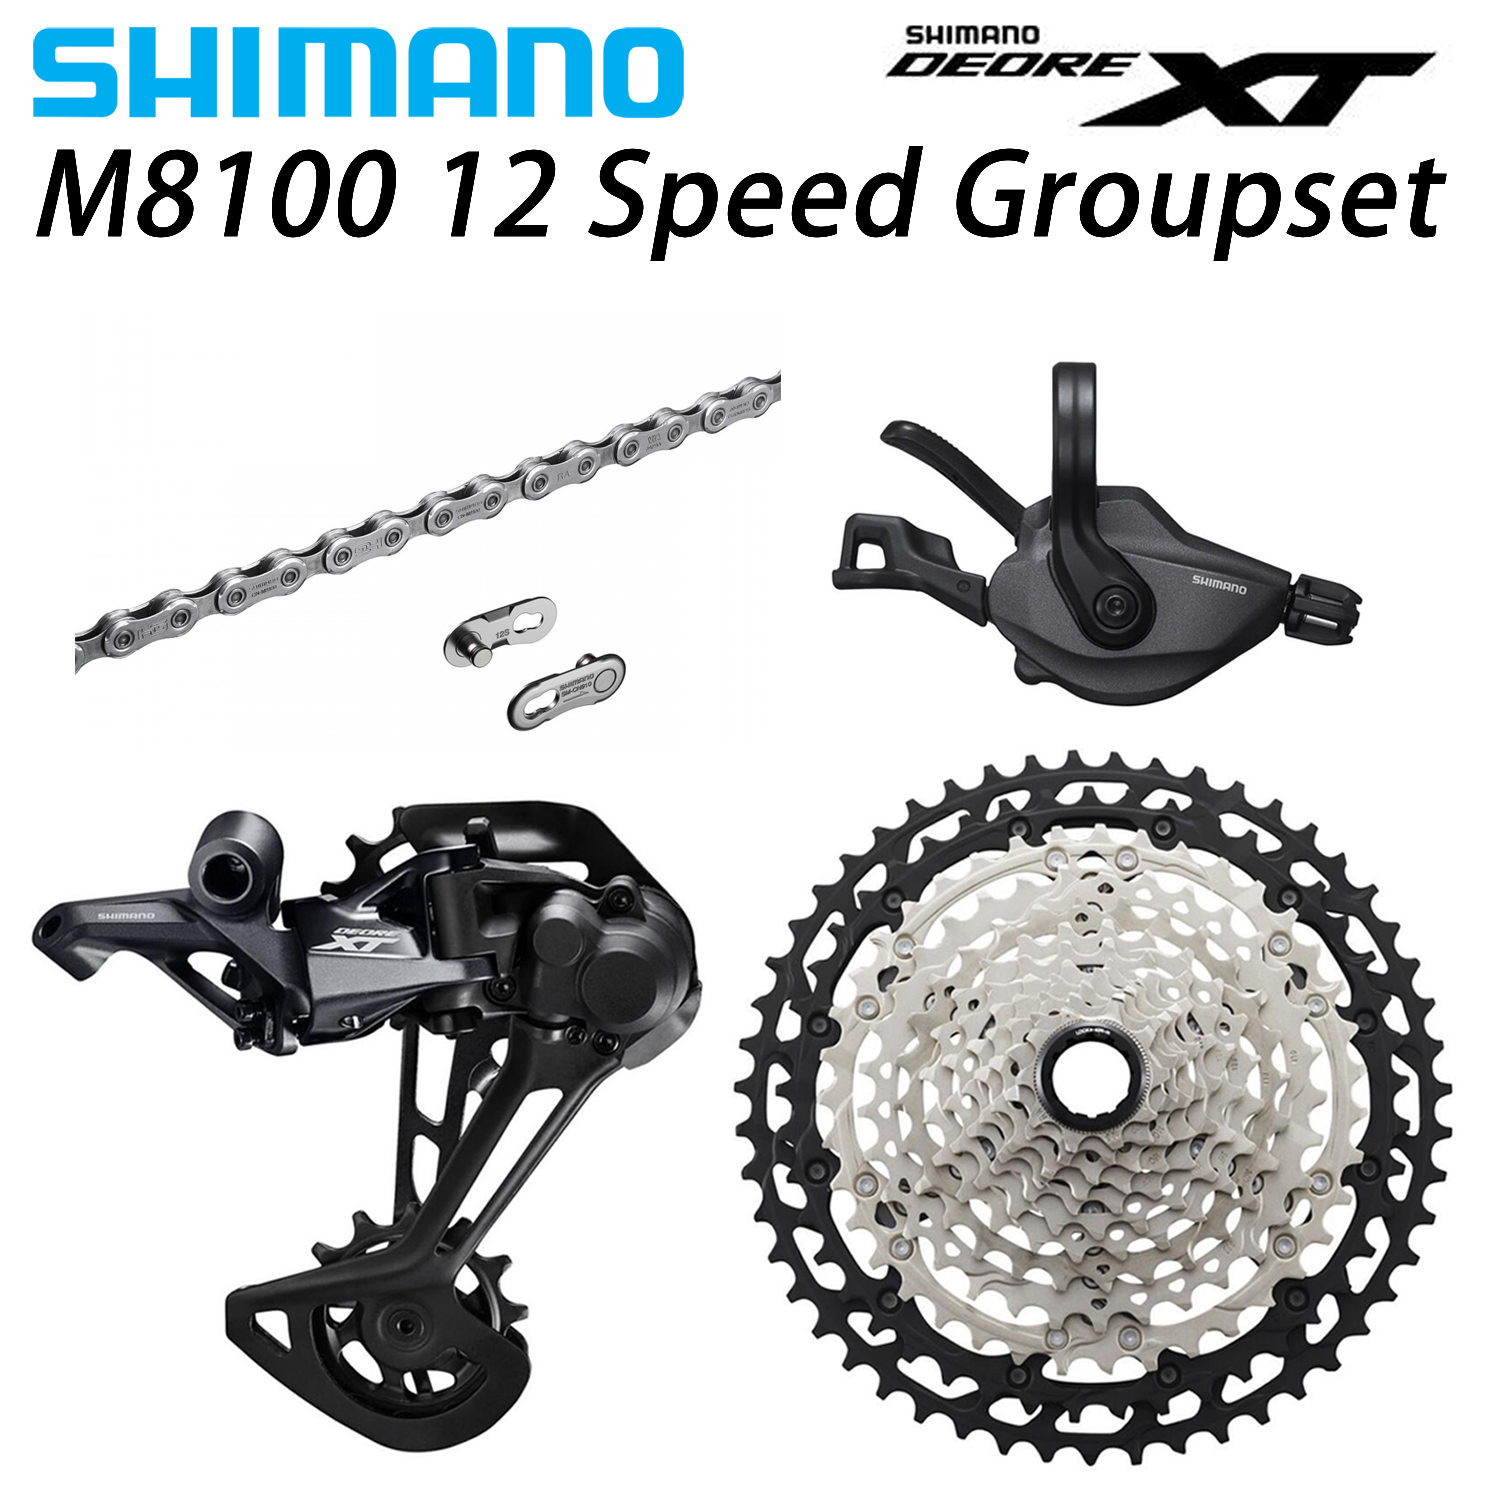 SHIMANO DEORE XT M8100 Groupset MTB Mountain Bike 1x12-Speed 51T SL+RD+CS+HG M8100 shifter Rear Derailleur image